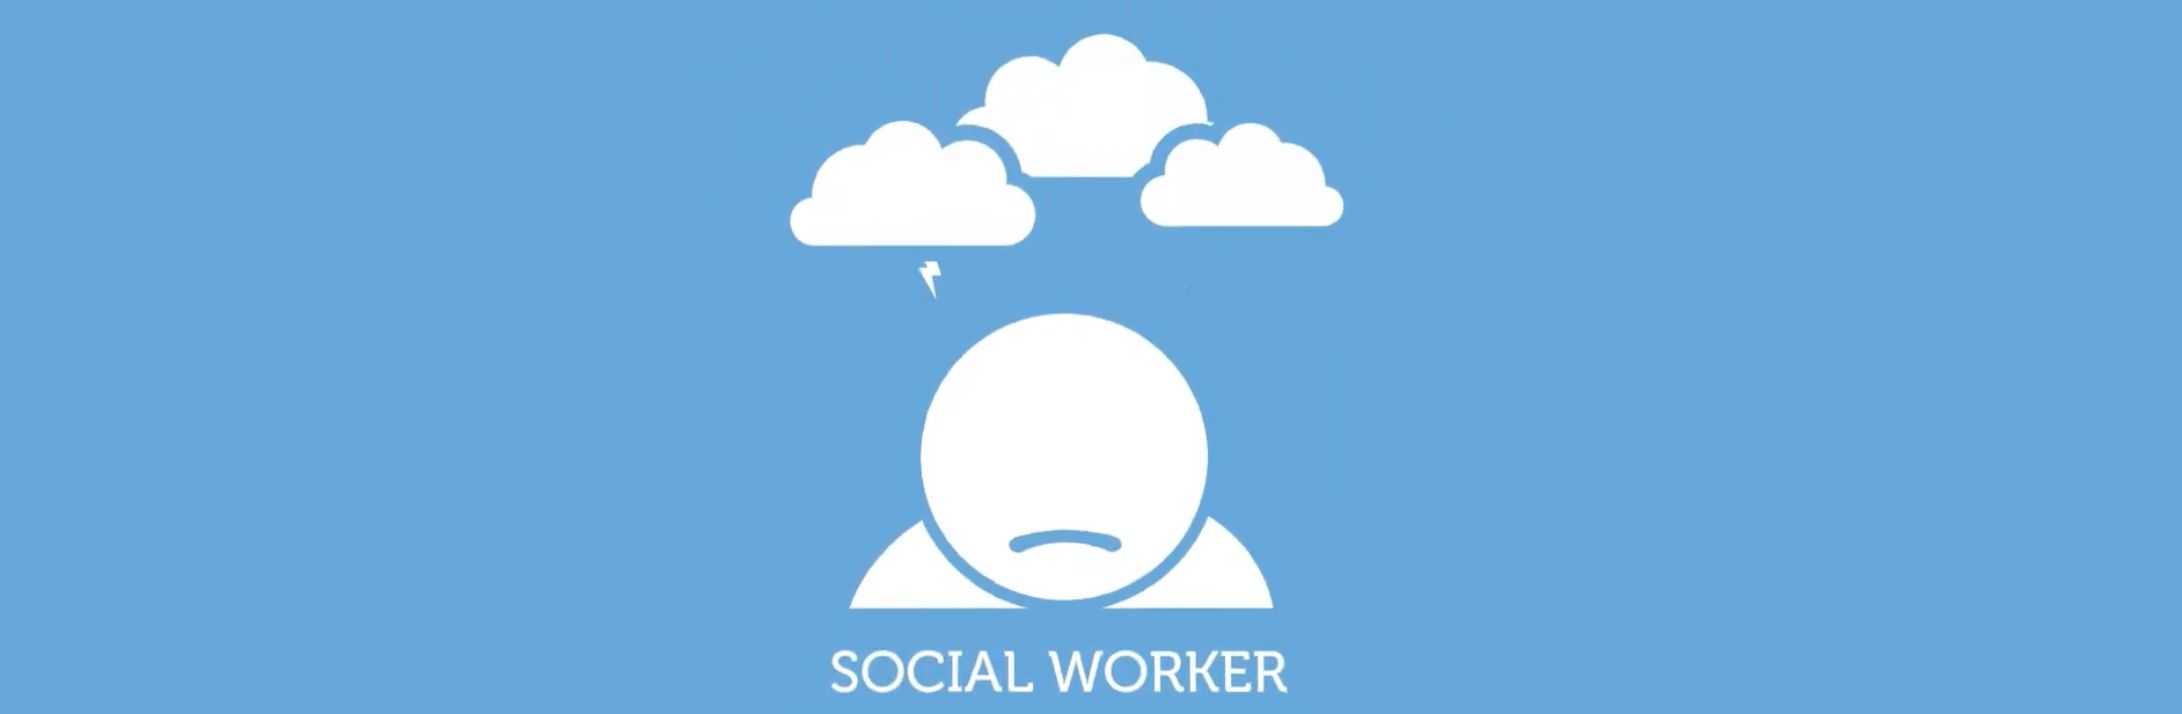 What Causes Stress in Social Work?